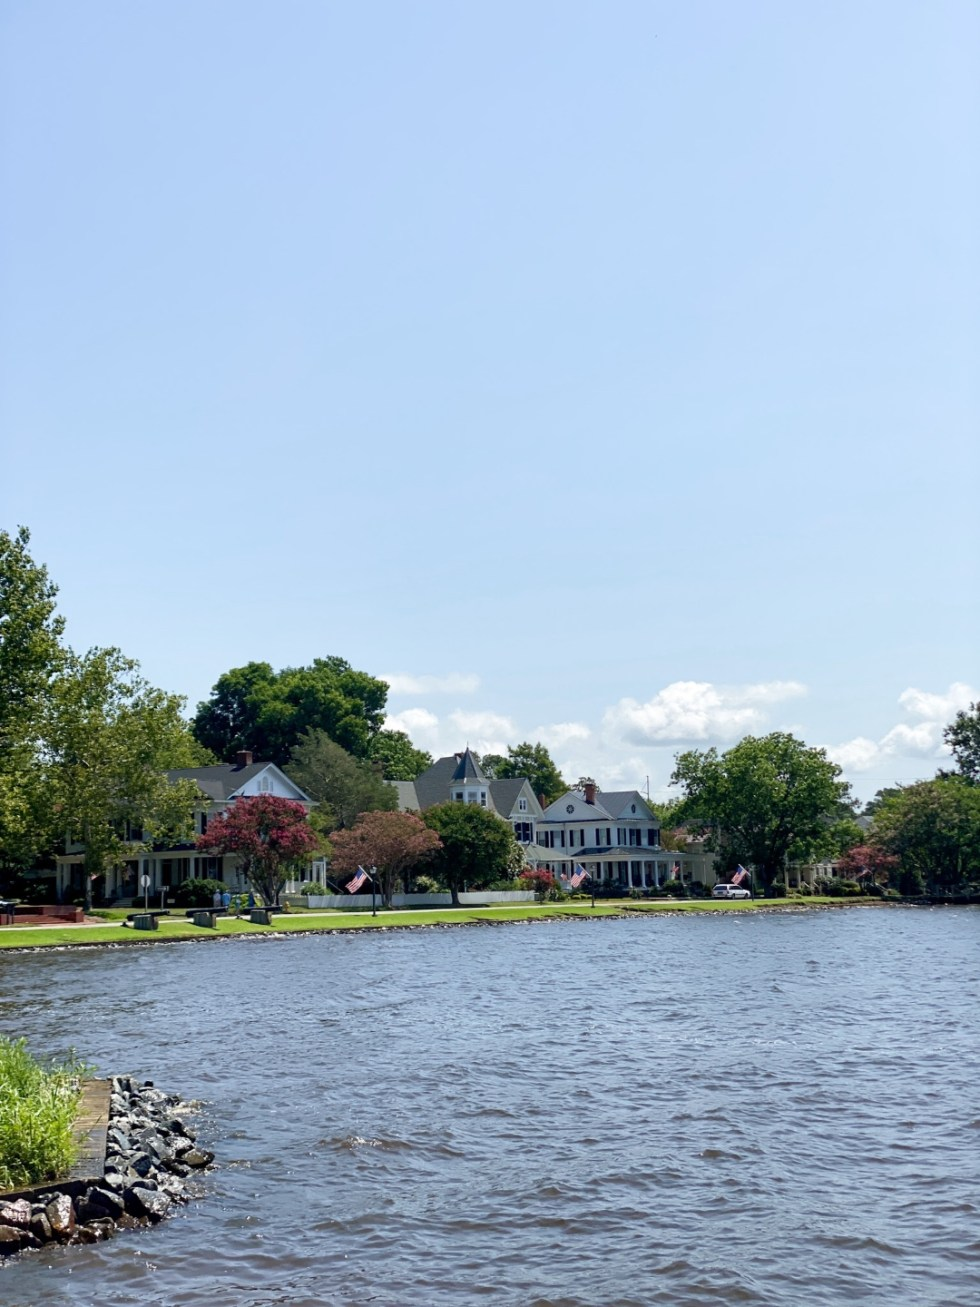 Top 10 Best Things to Do in Edenton, NC: A Complete Travel Guide - I'm Fixin' To - @imfixintoblog | Edenton Travel Guide by popular NC travel guid, I'm Fixin' To: image of waterfront colonial homes.